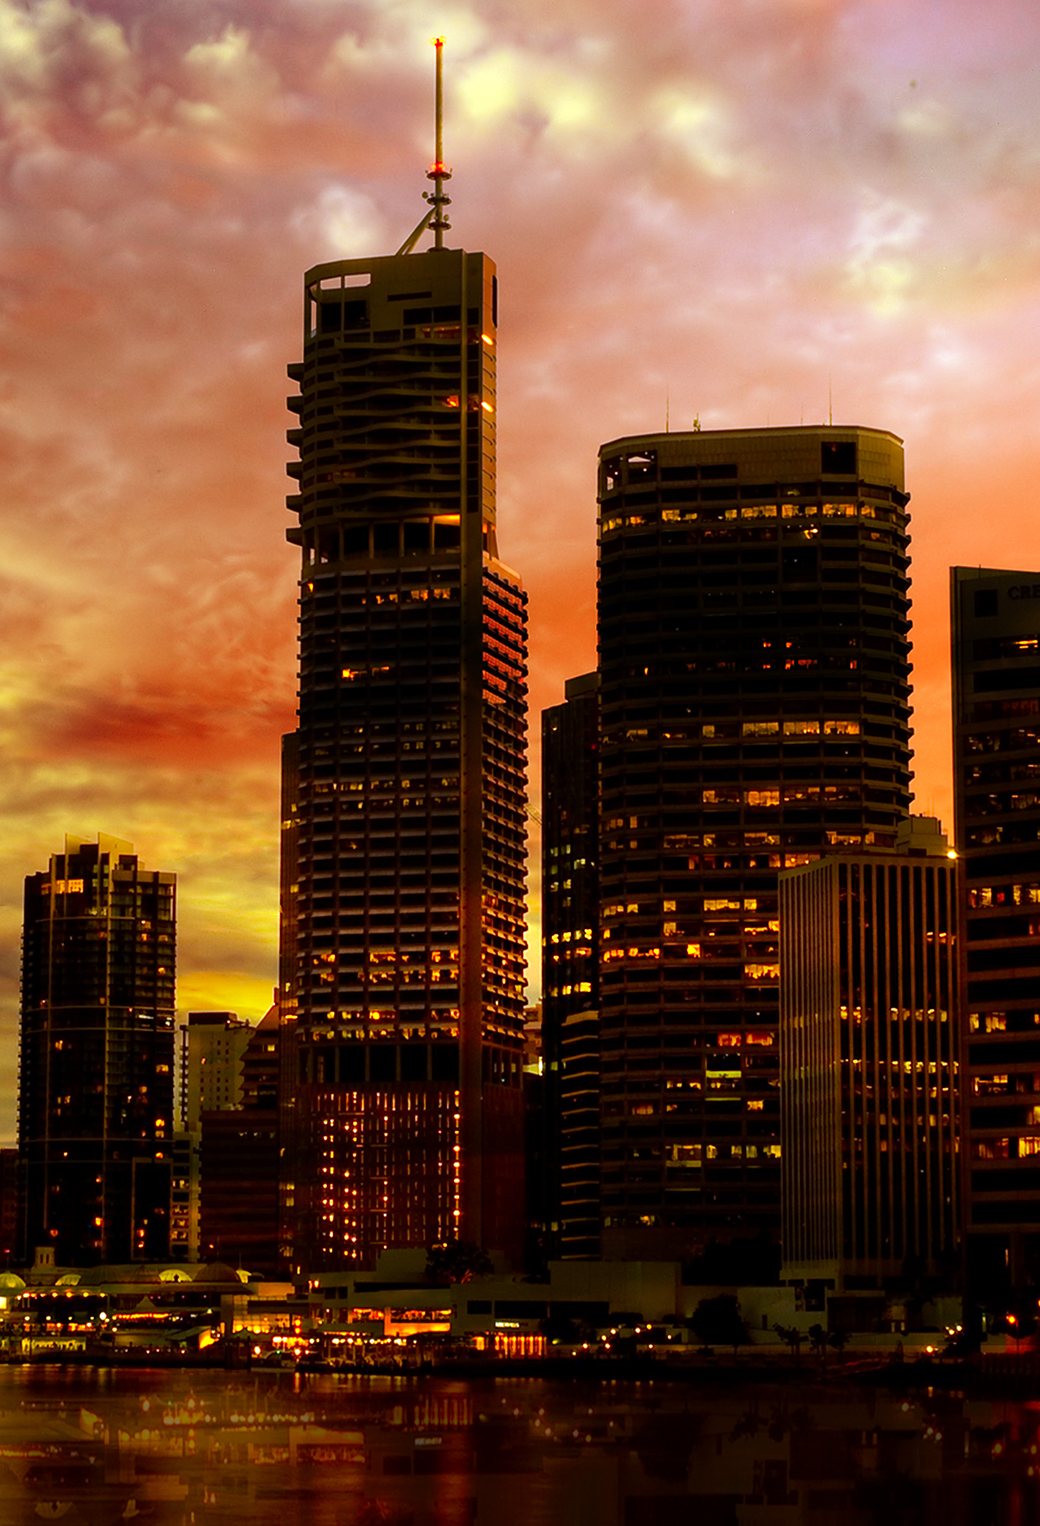 Sunset City 3Wallpapers iPhone Parallax Sunset City